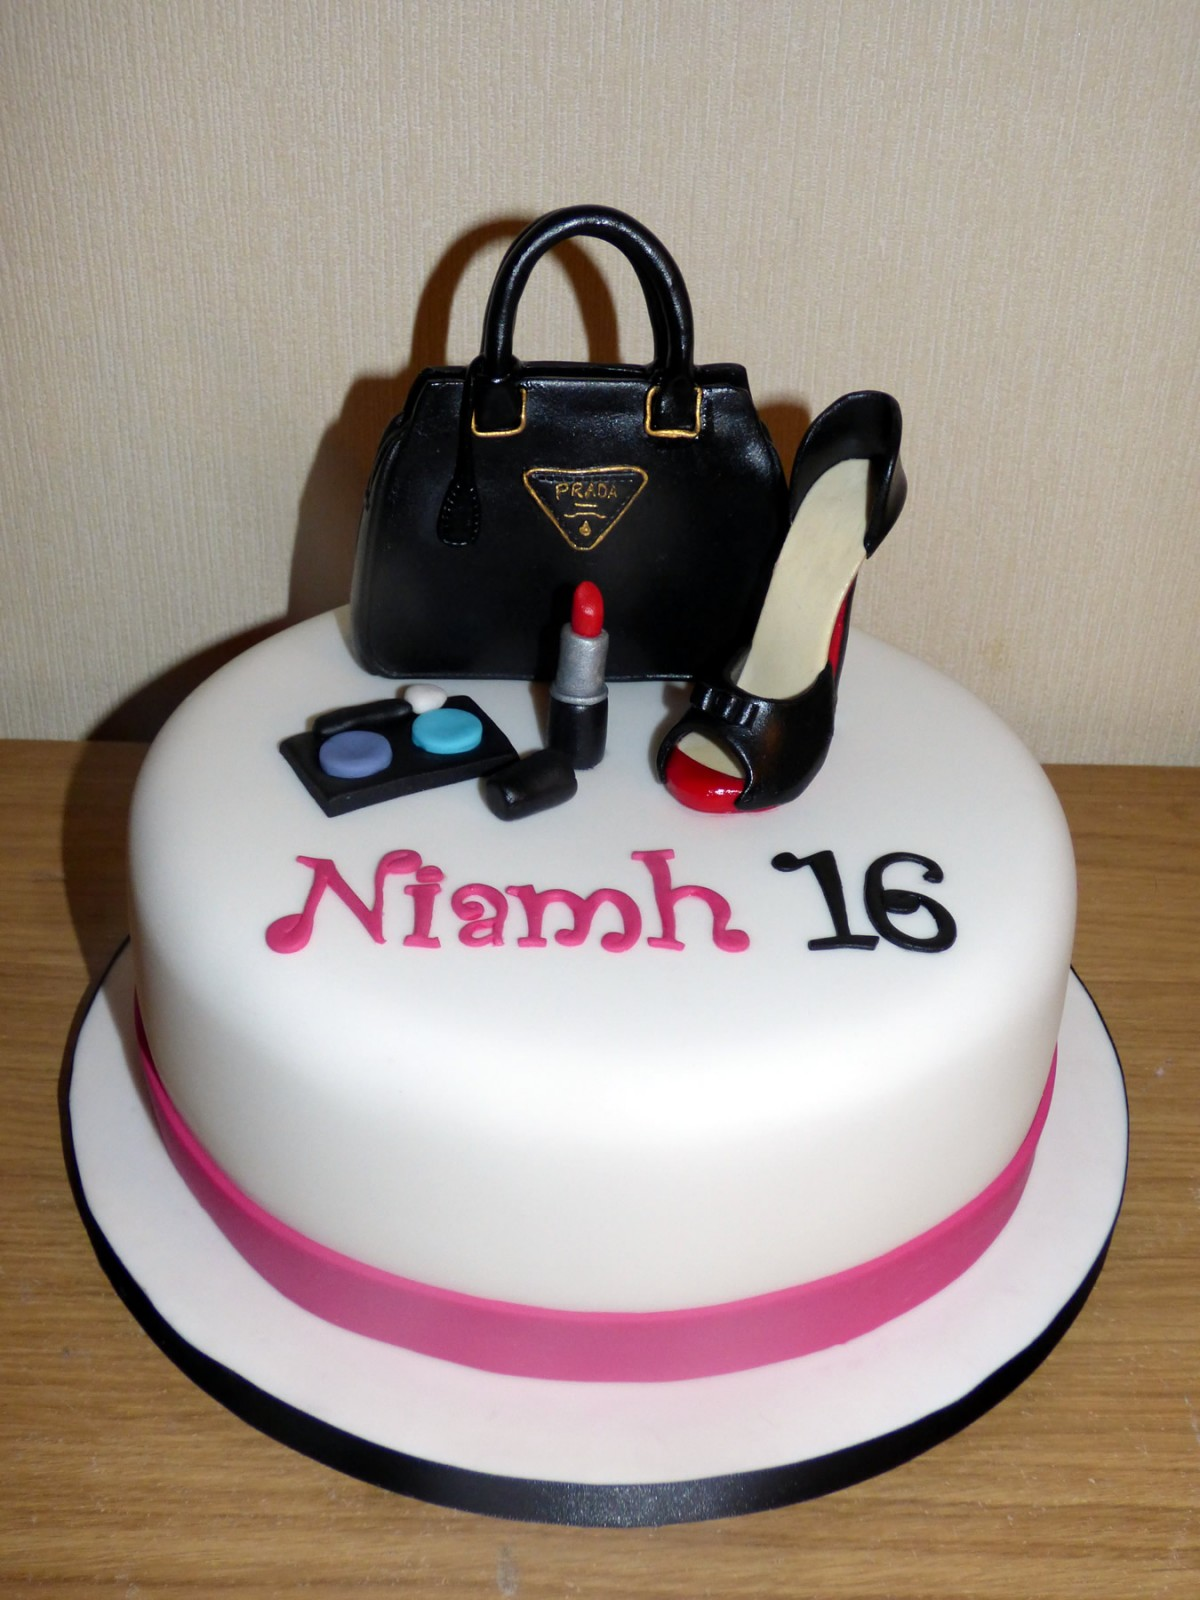 Prada Handbag Shoe And Make Up Birthday Cake Susies Cakes